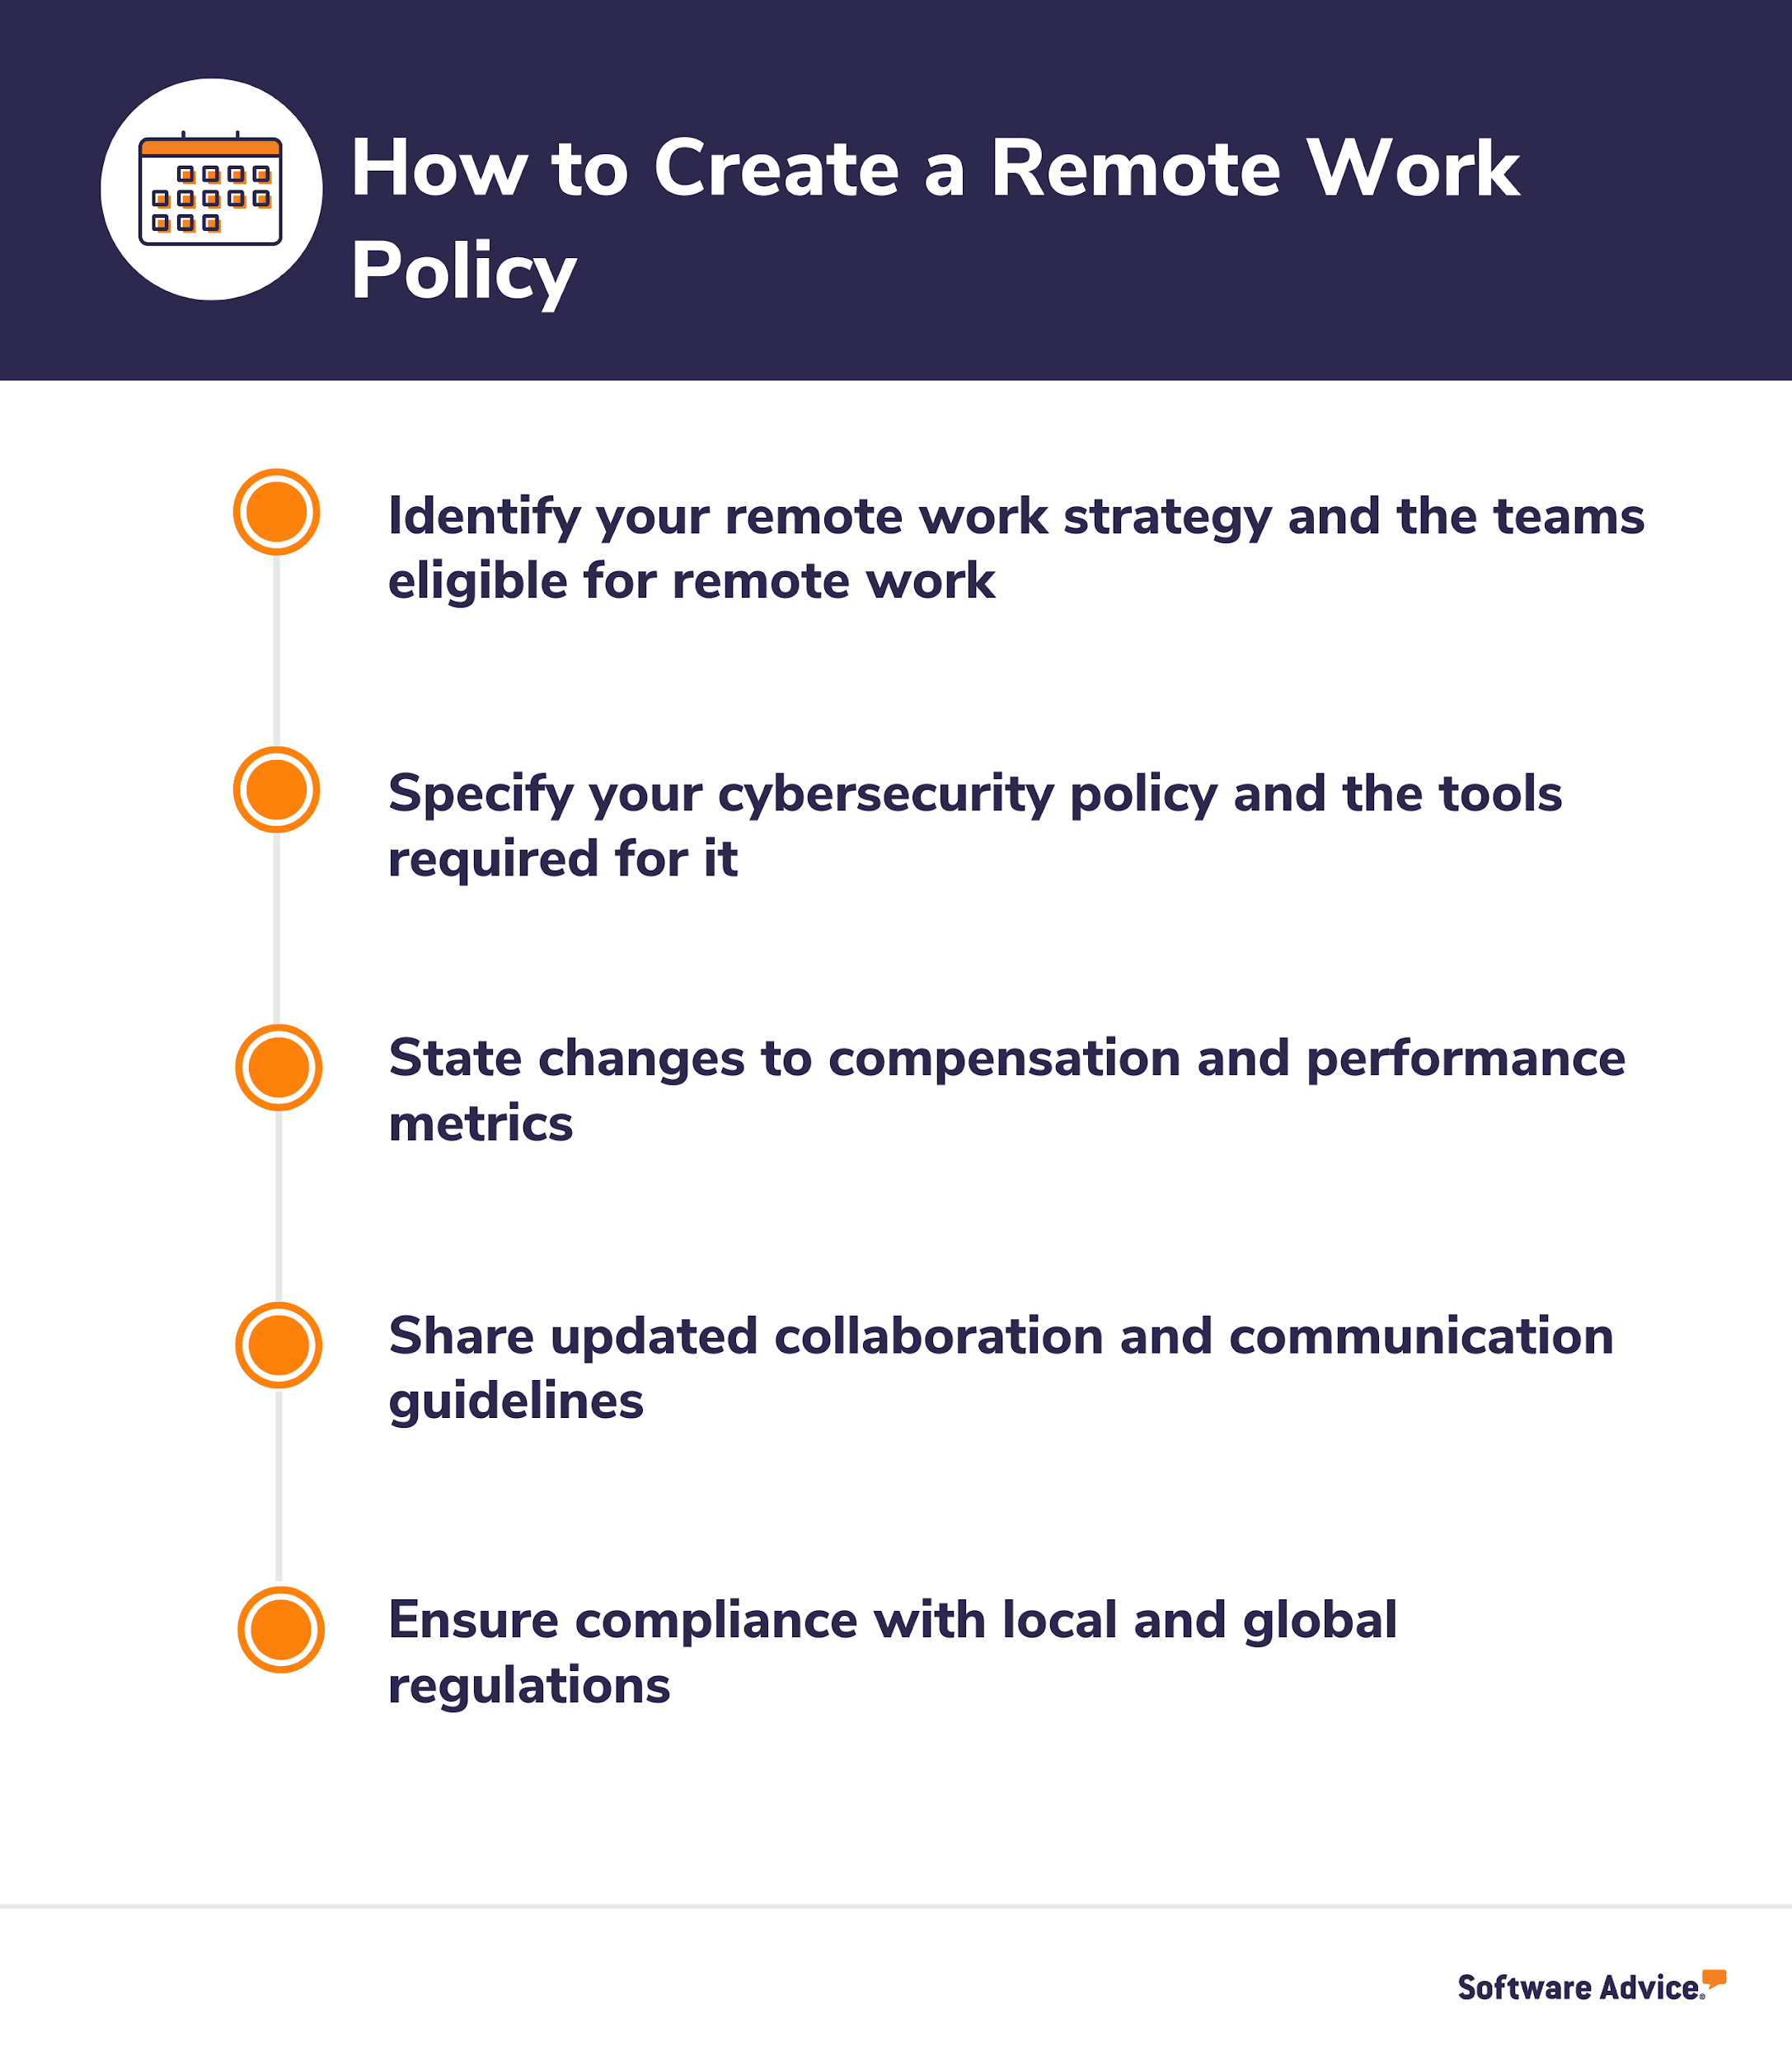 How to create a remote work policy